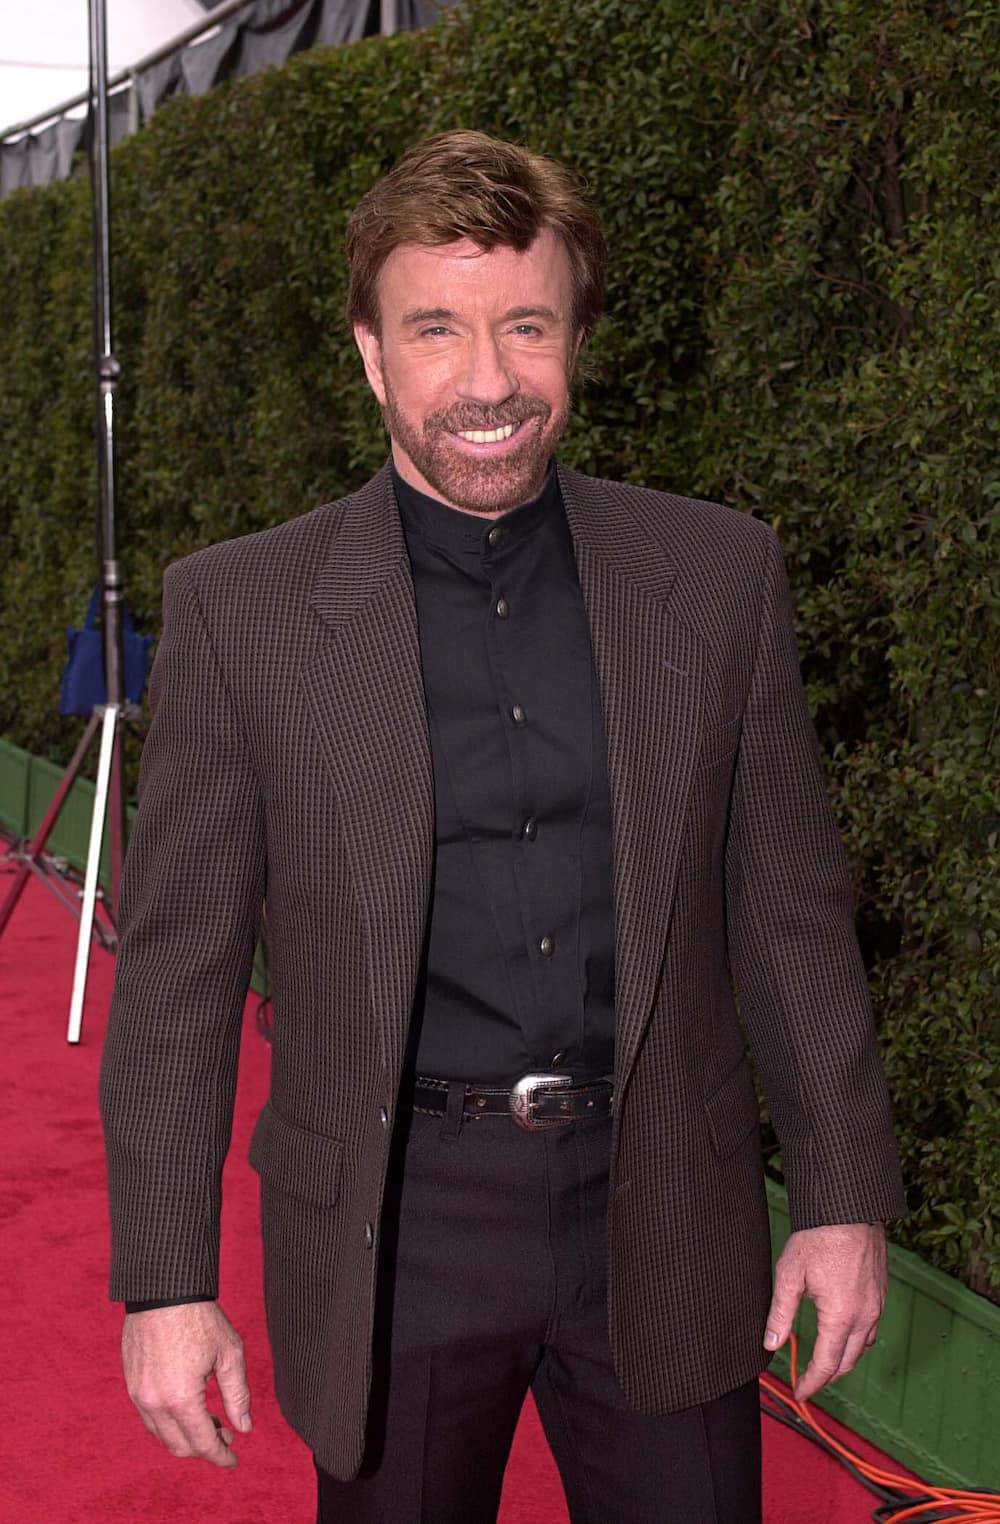 How much is Chuck Norris worth?